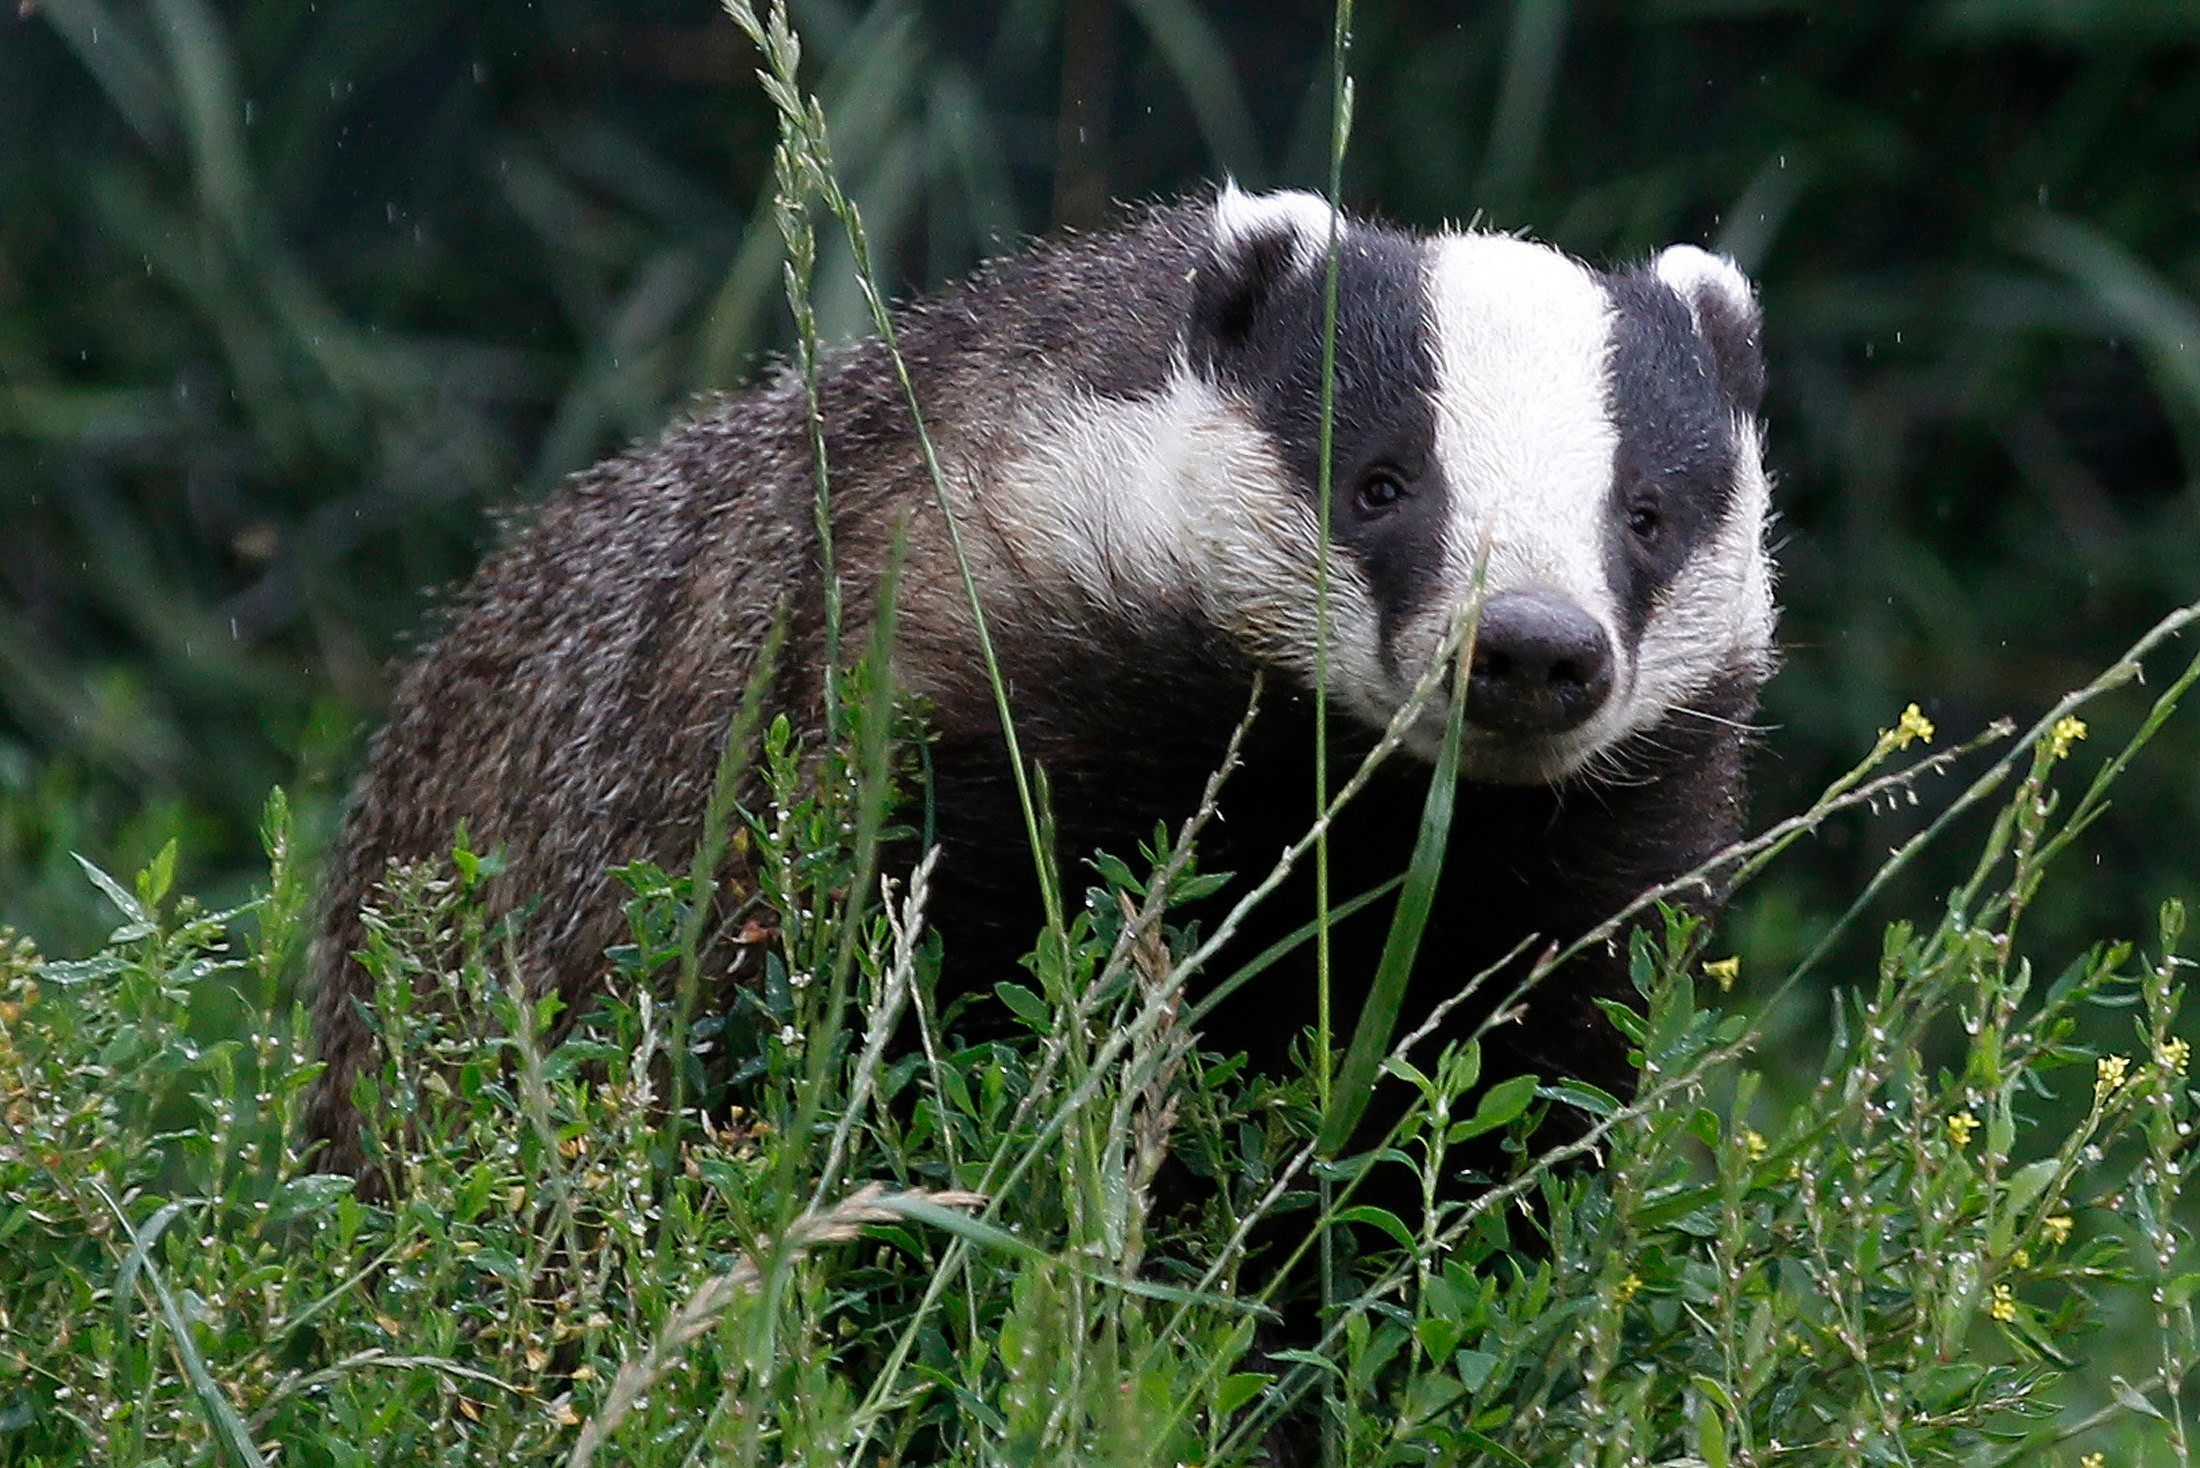 Since there's no practical way to first test whether or not a badger is actually infected with...